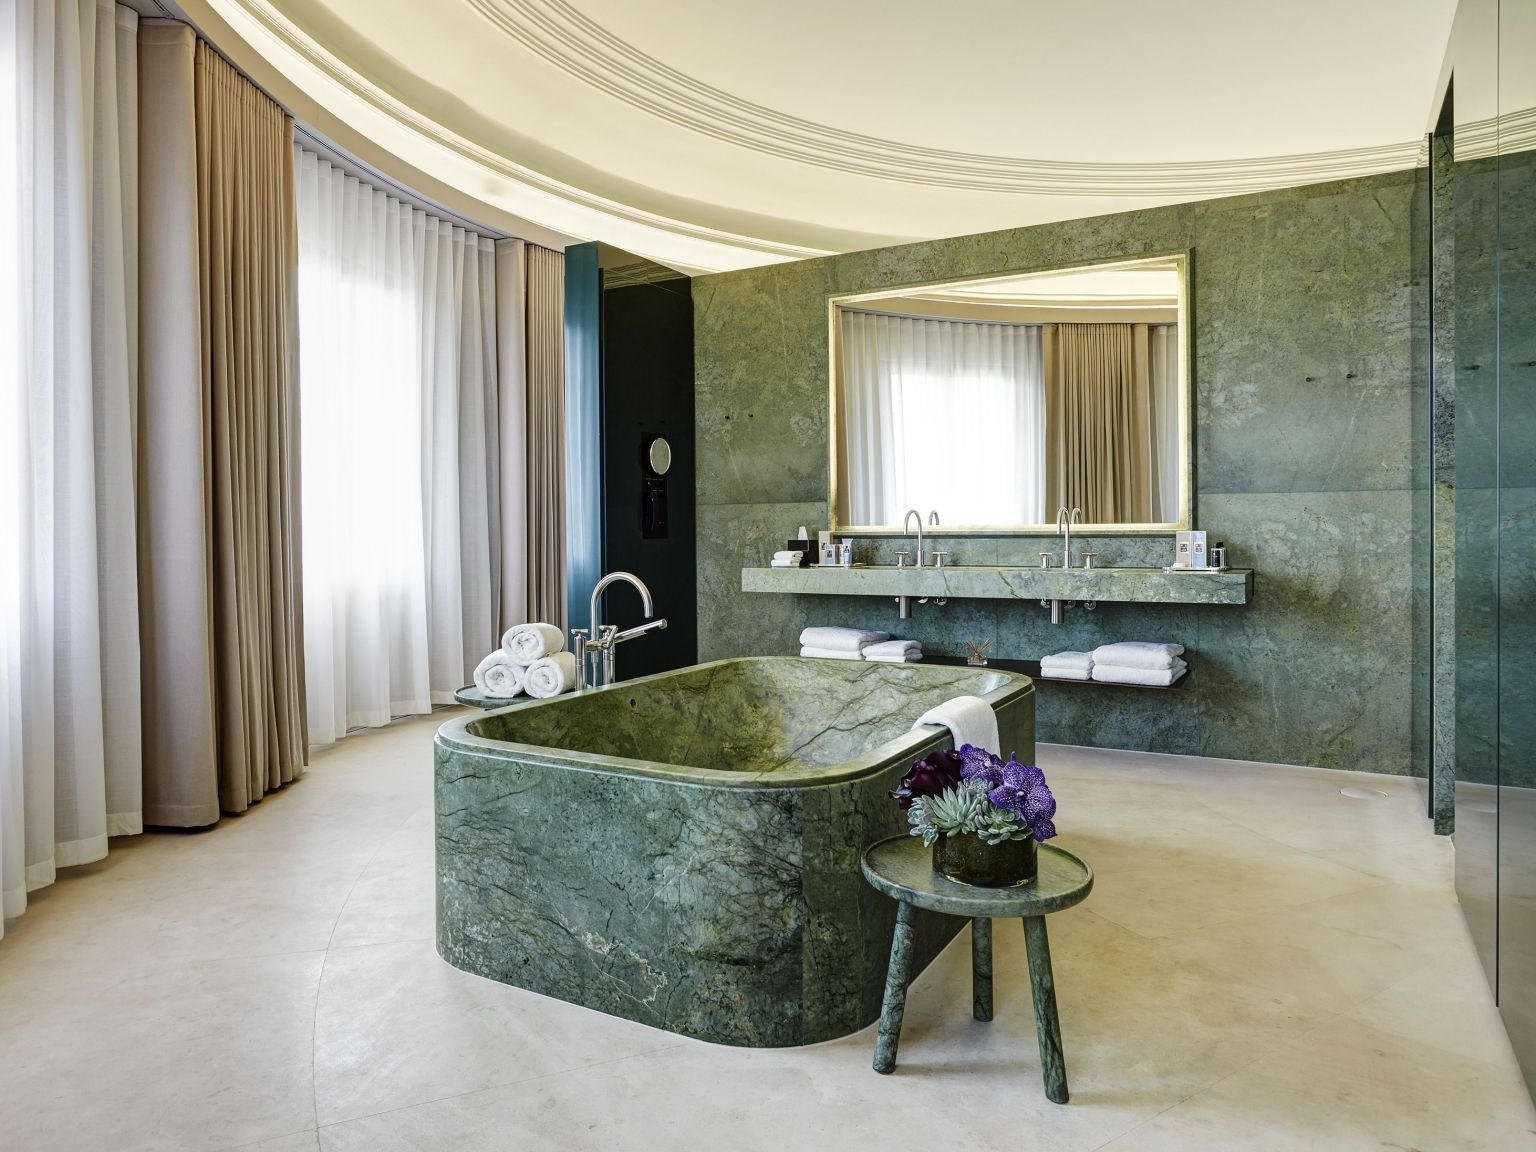 Dome penthouse hotel cafe royal london bathroom green marble